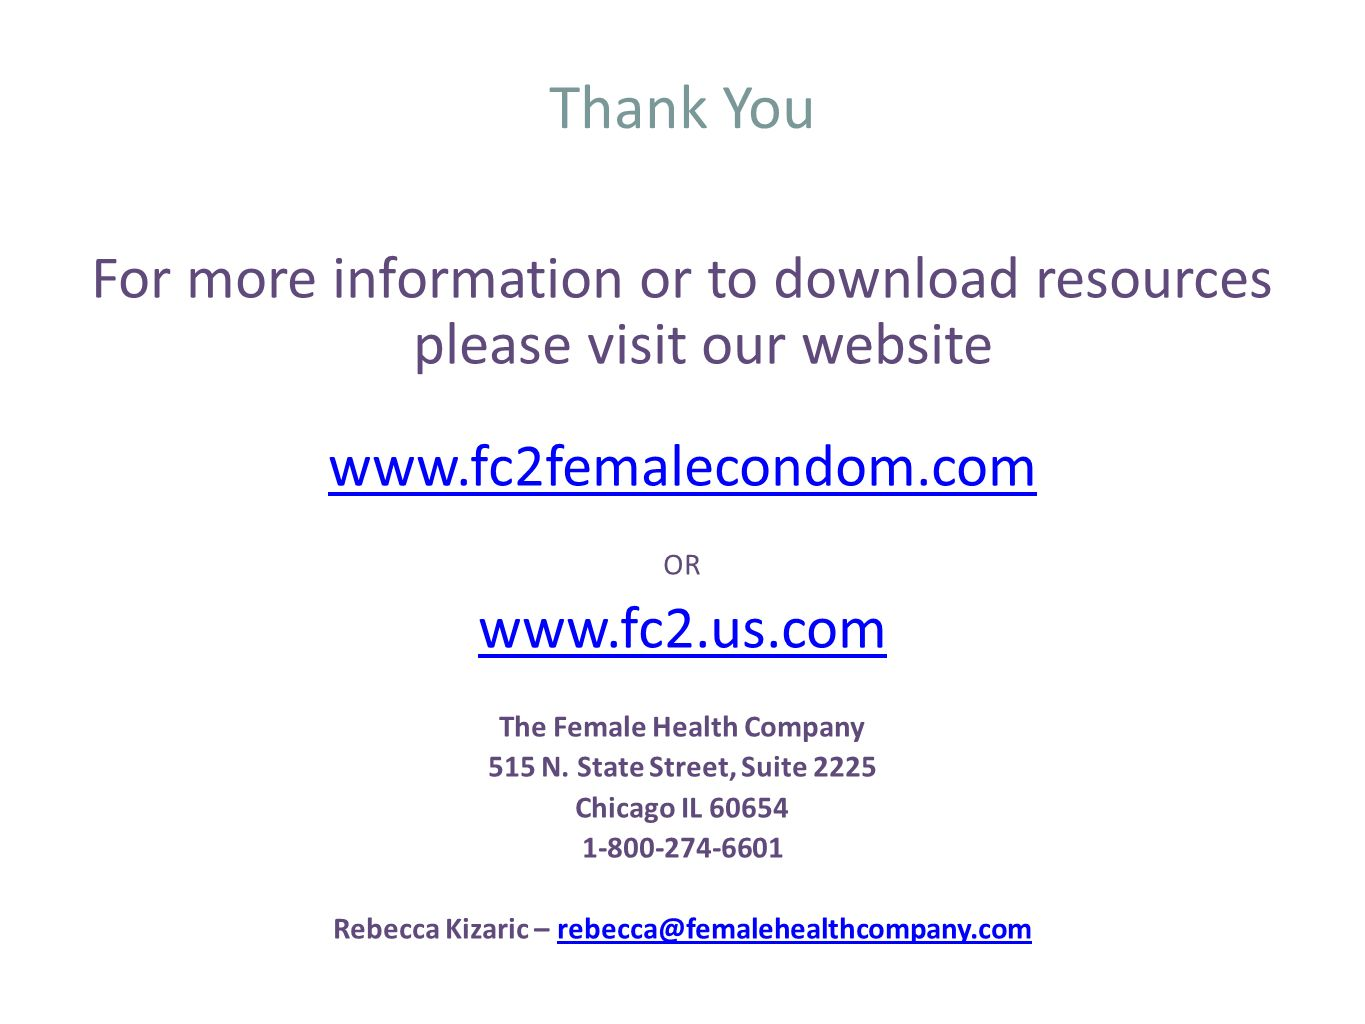 Thank YouFor more information or to download resources please visit our website. www.fc2femalecondom.com.